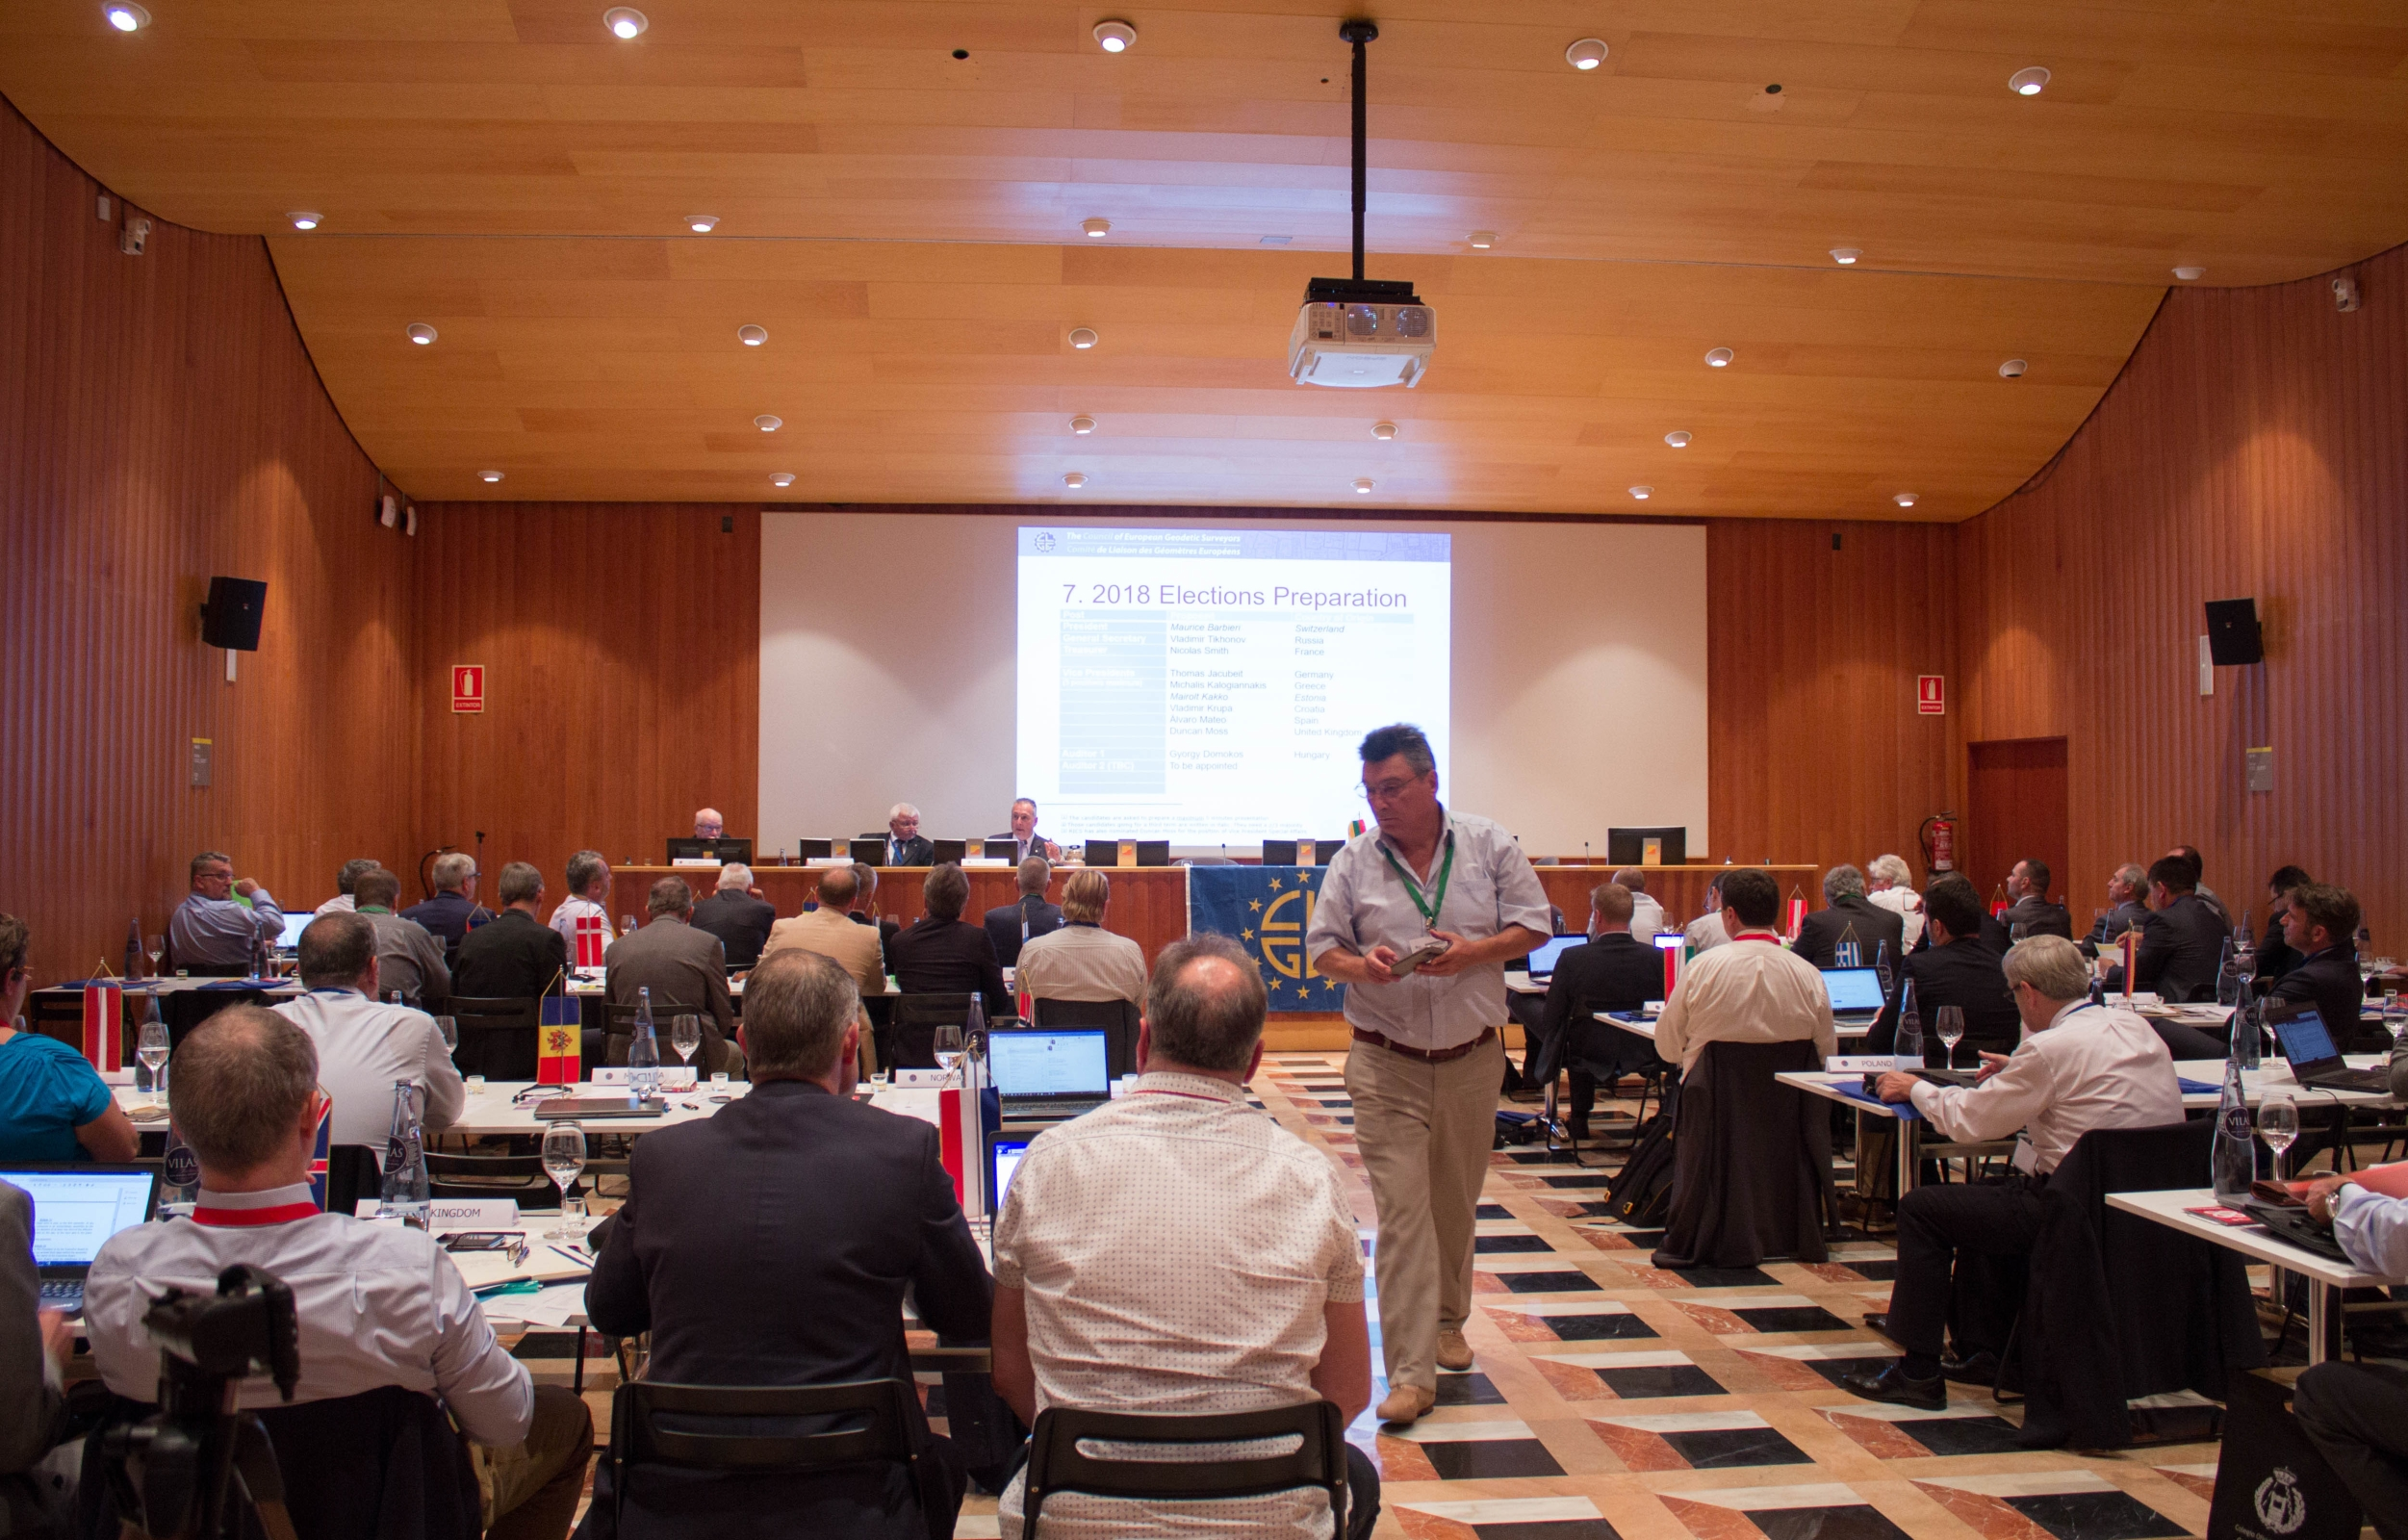 clge-general-assembly-barcelona-2018_44329727885_o.jpg